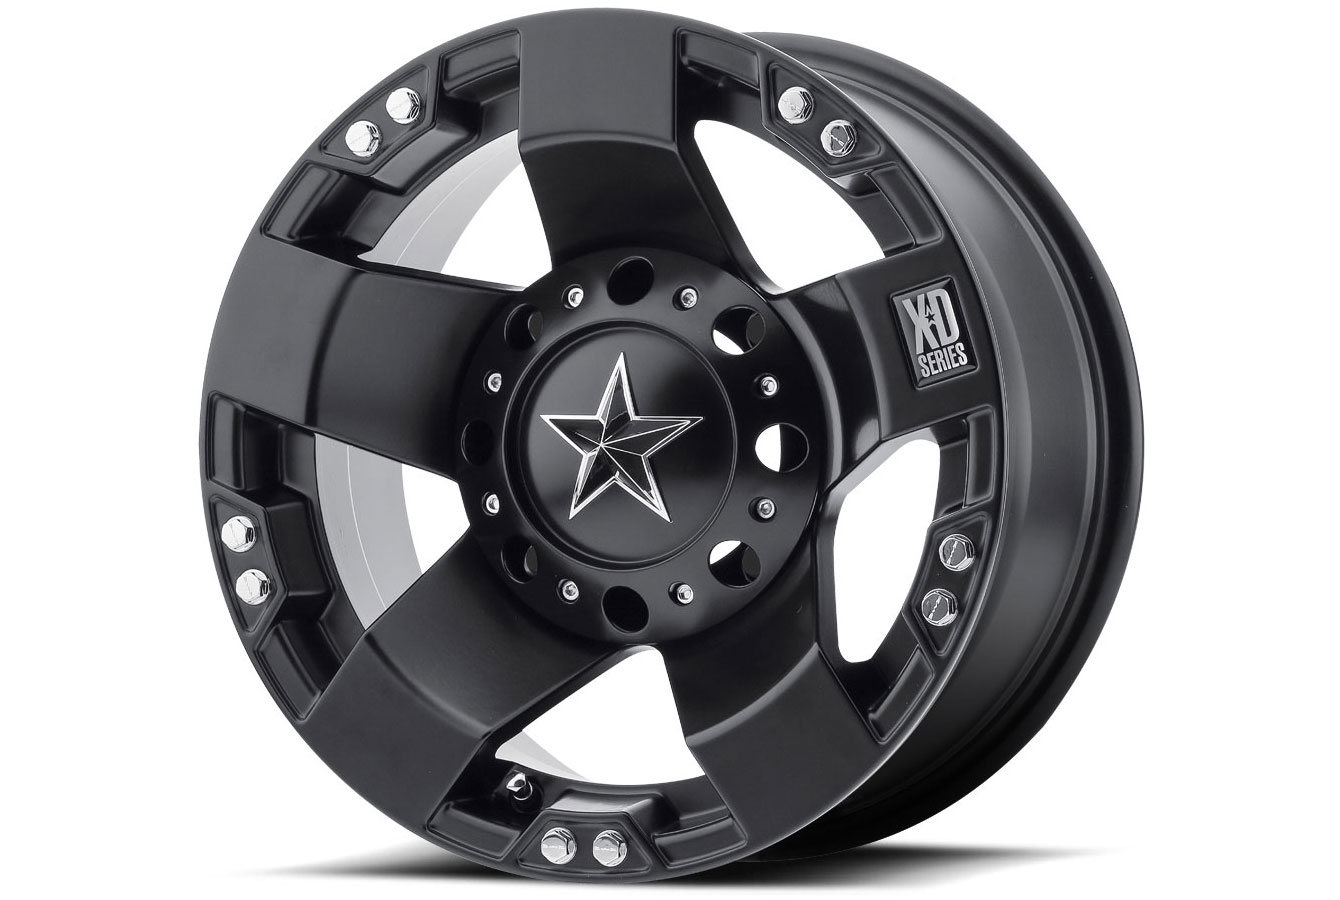 KMC 775 ROCKSTAR I WHEELS